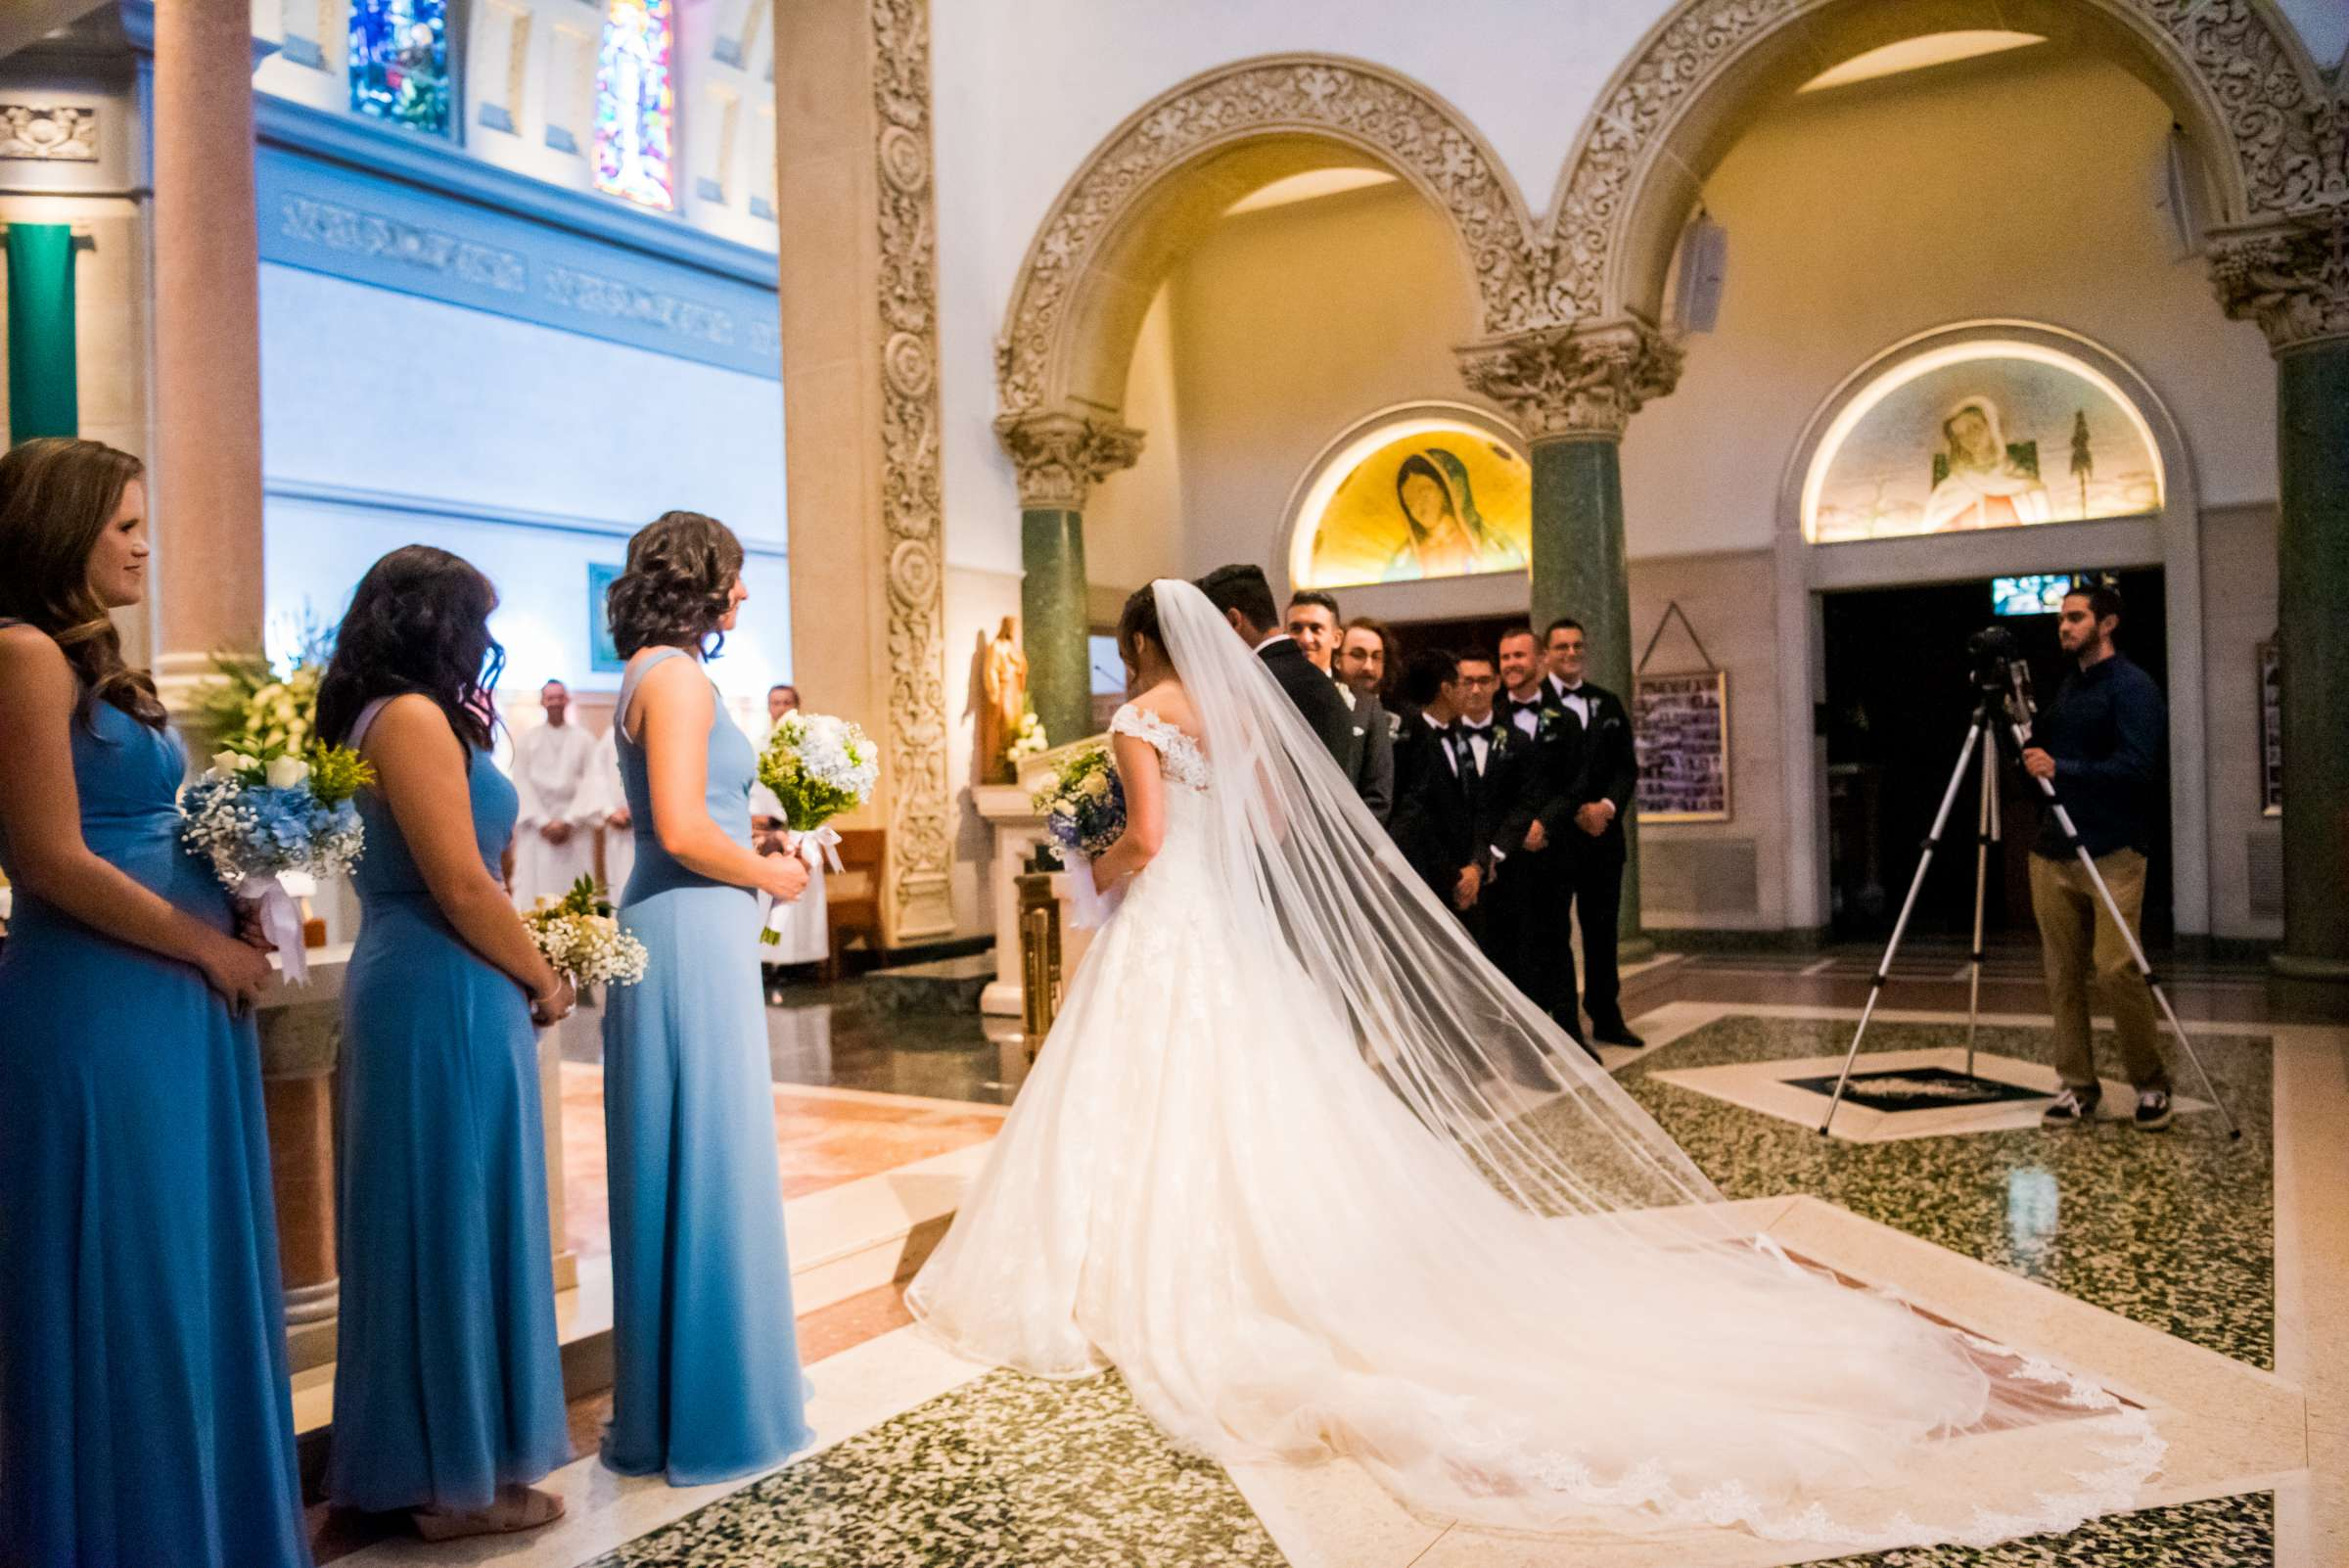 The Immaculata Wedding, Arianna and Jonah Wedding Photo #108 by True Photography